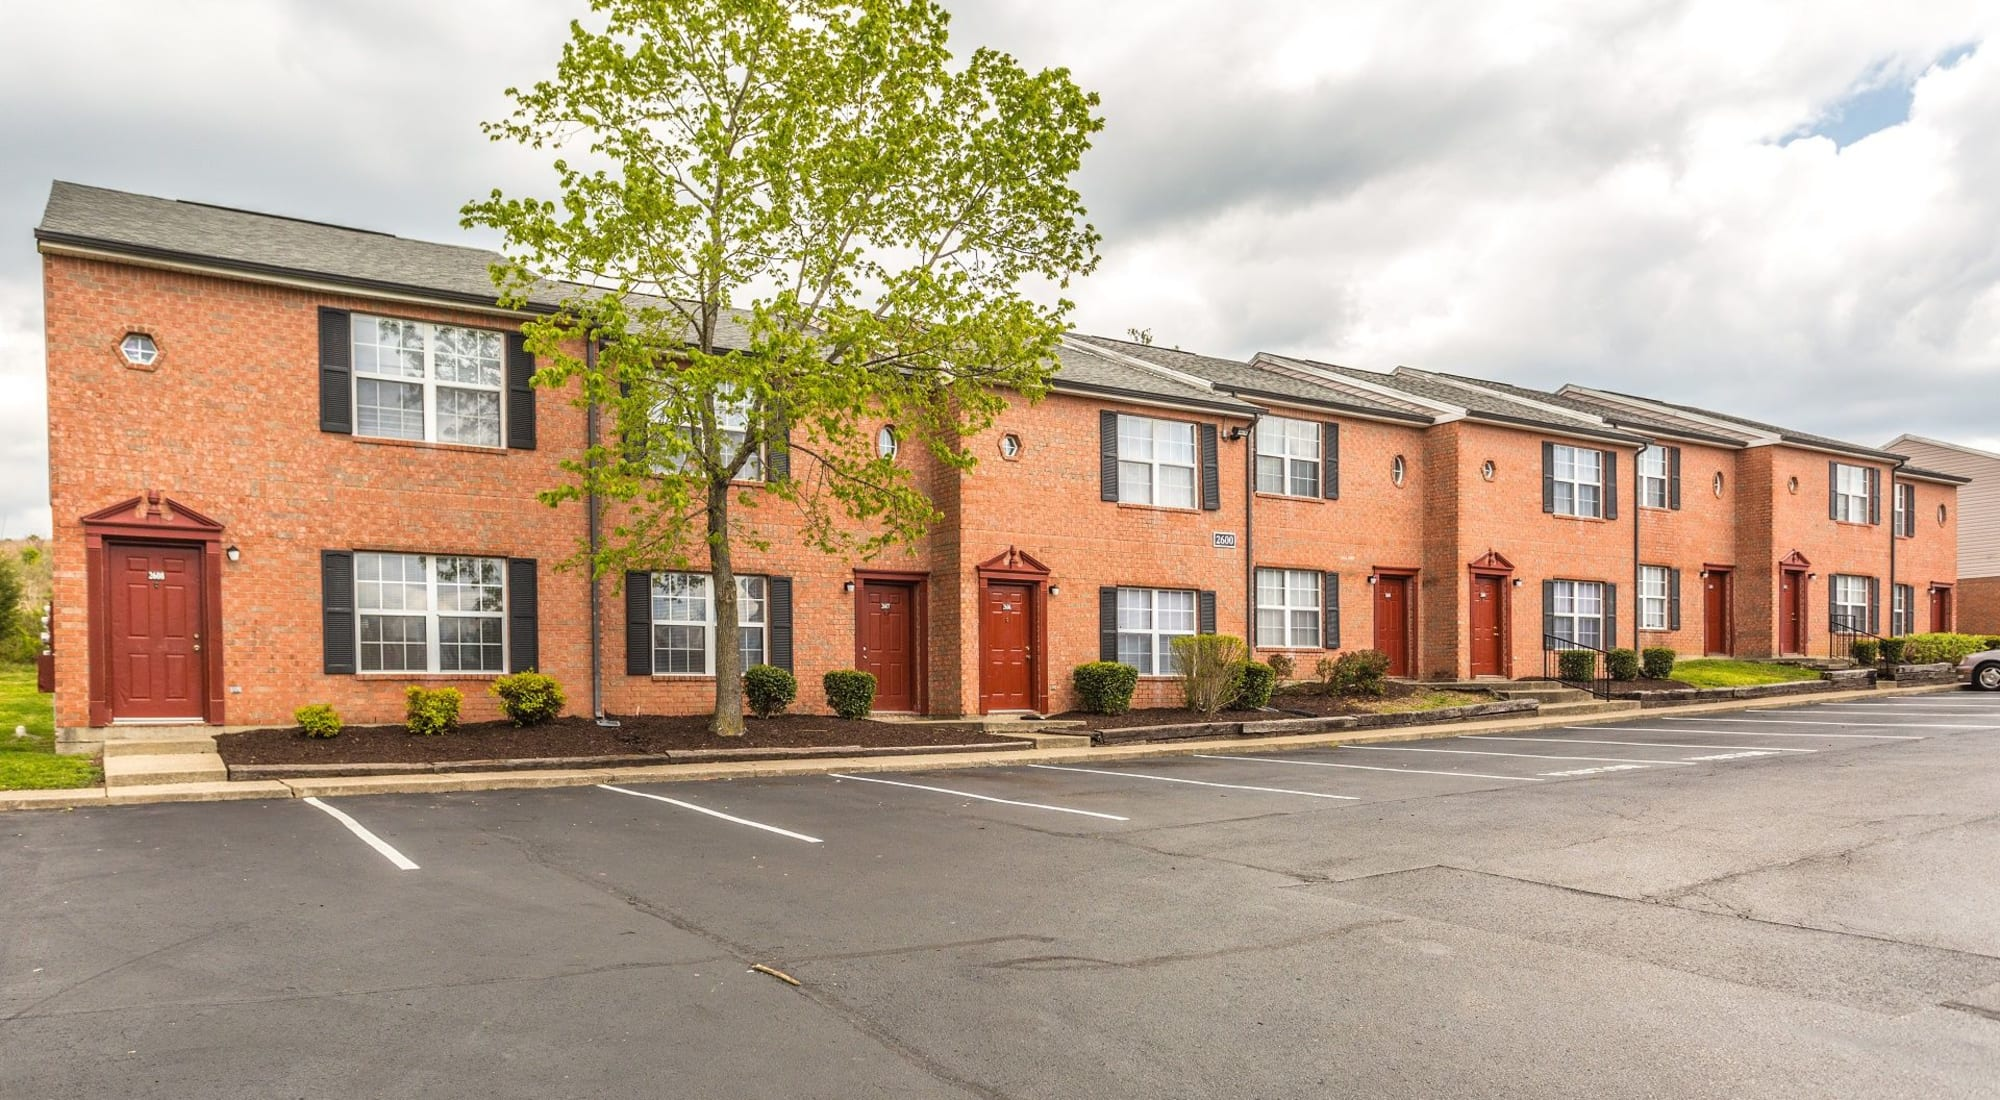 Contact us at Cypress Creek Townhomes in Goodlettsville, Tennessee